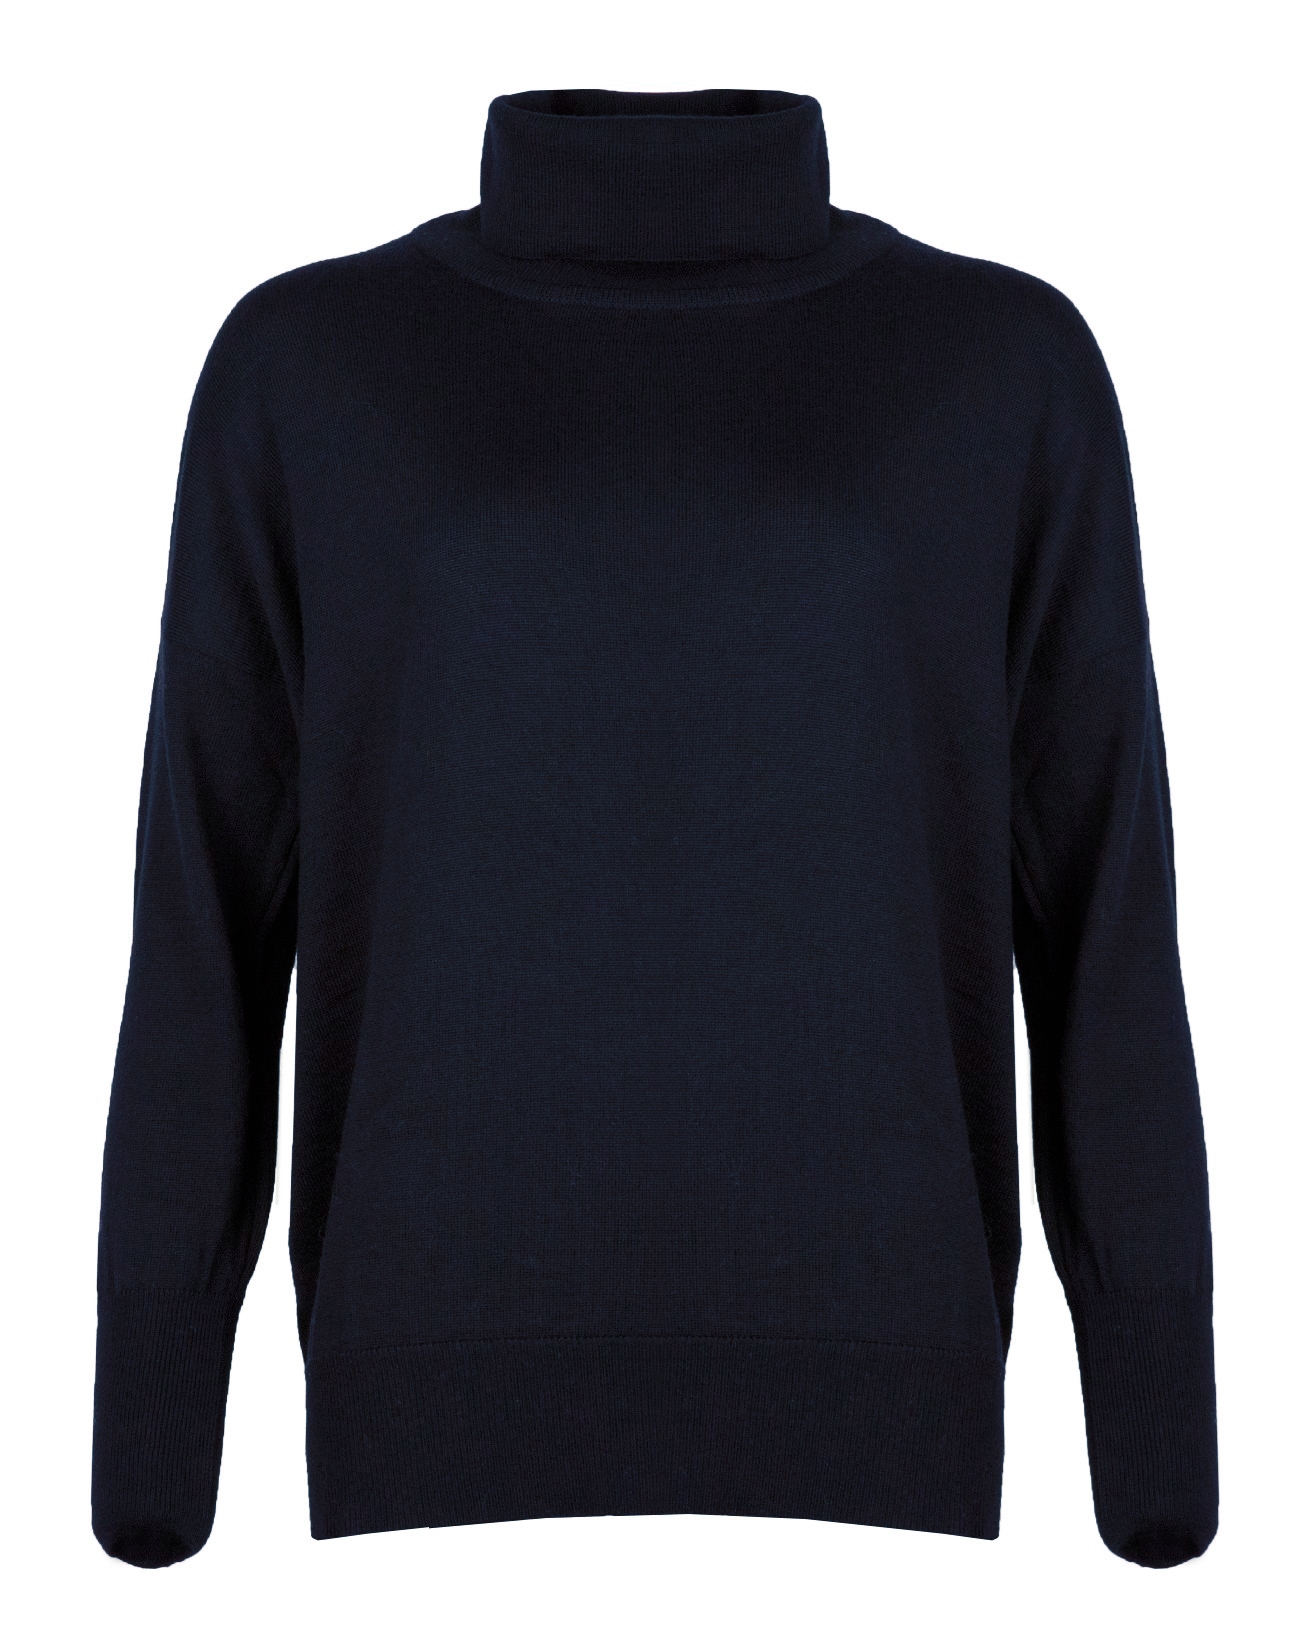 7401-slouchy fine knit roll neck-dark navy-front-ss18.jpg